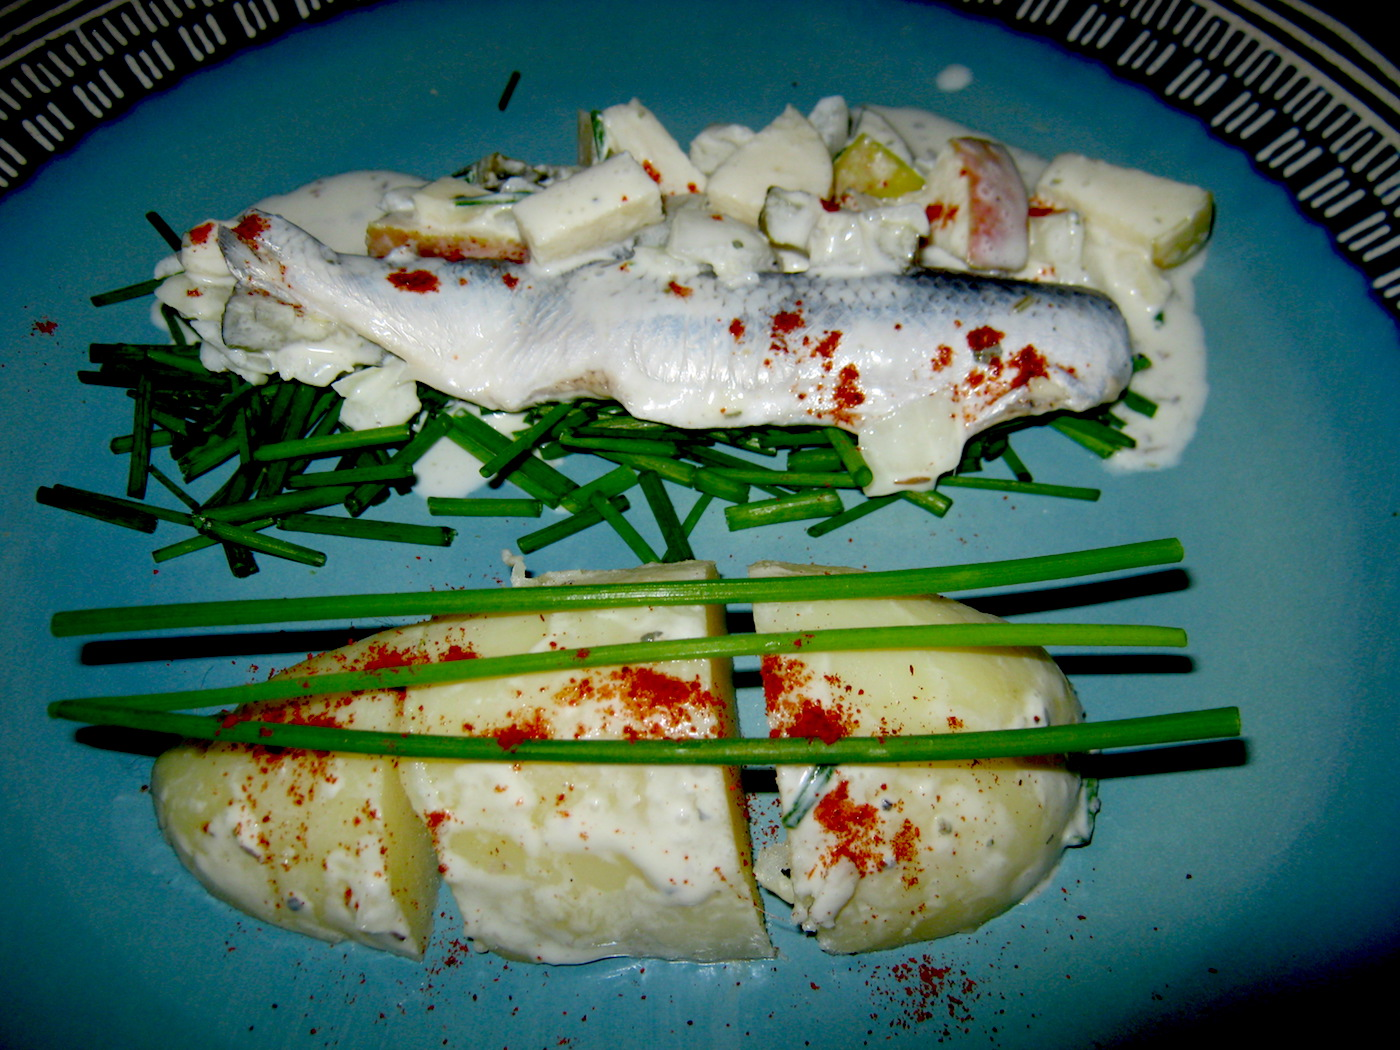 Sahnehering in sweet and sour cream and yoghurt marinade